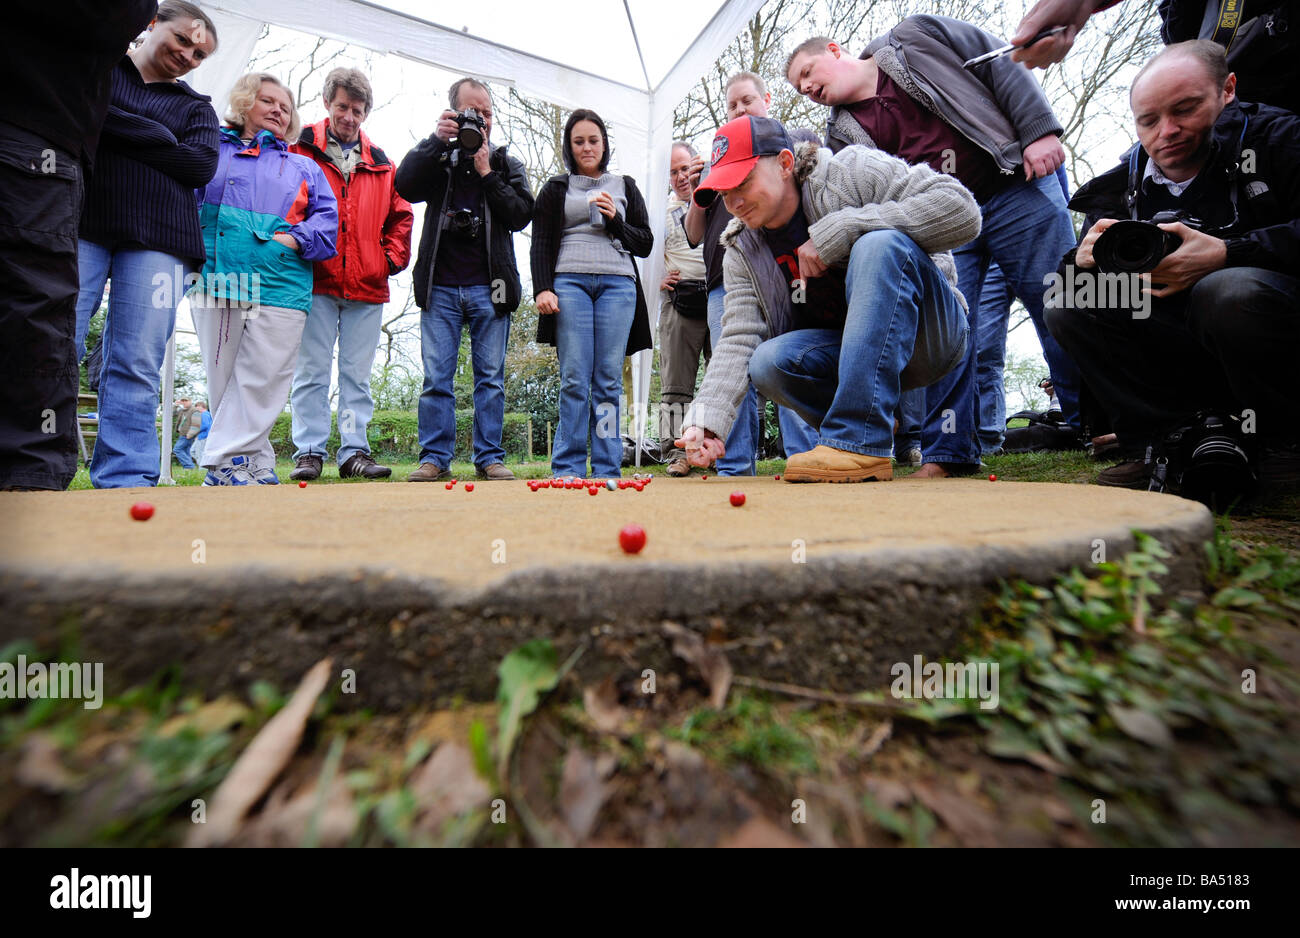 The World Marbles Championships in Tinsley Green Crawley, UK. Picture by Jim Holden. - Stock Image